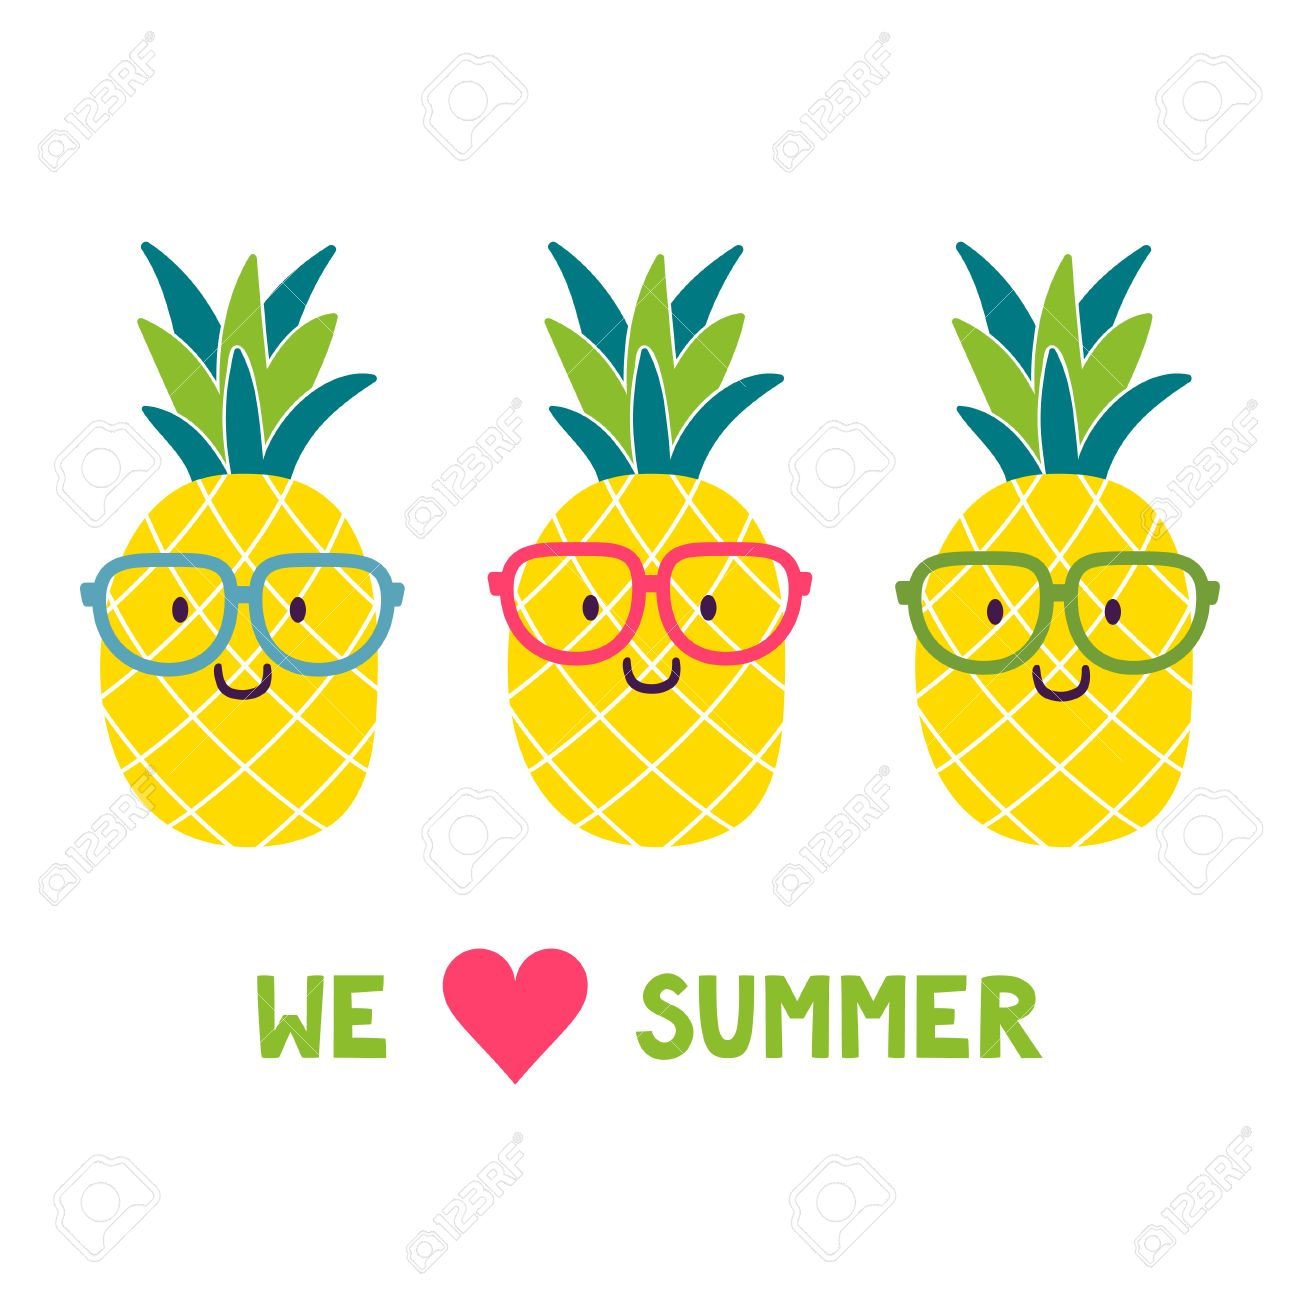 vector background with funny pineapples in glasses and text we